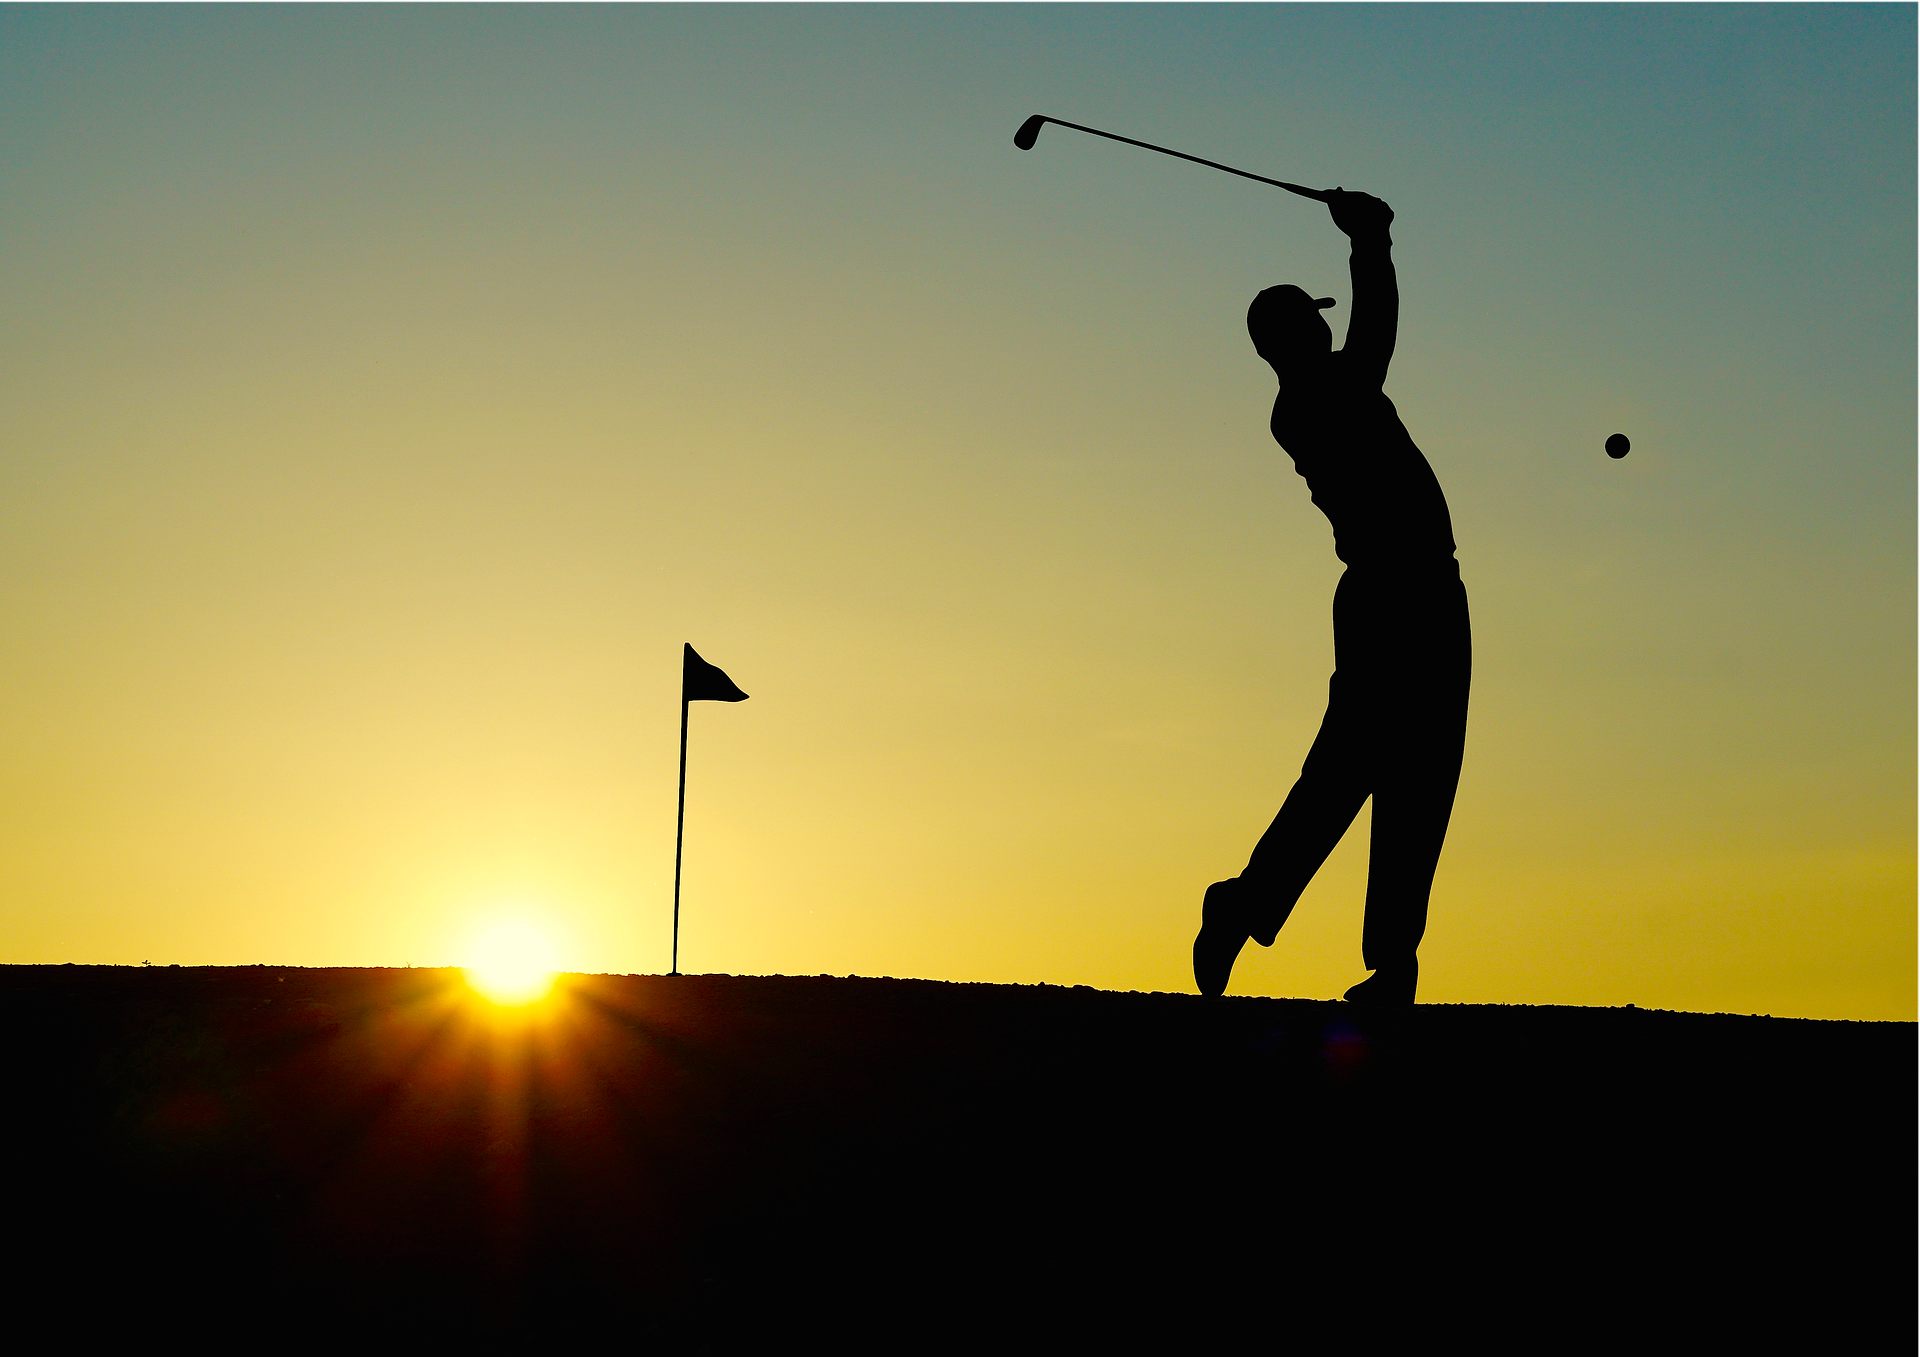 silhouette of golfer in front of sunset